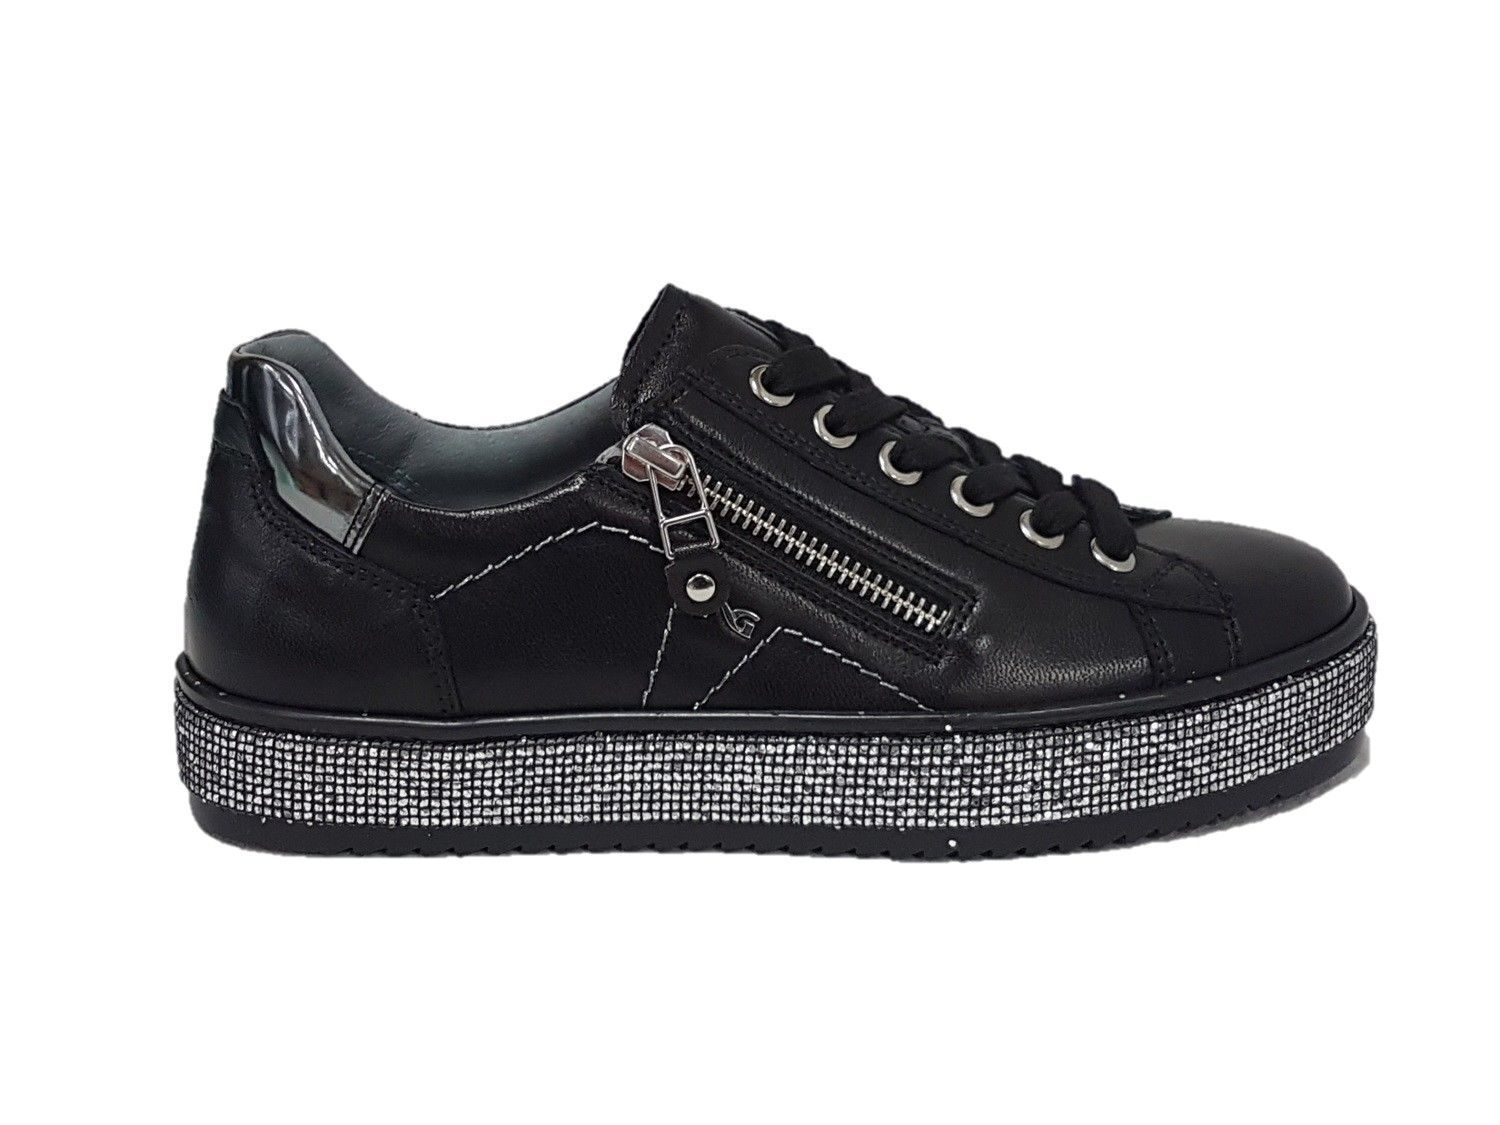 SNEAKERS NERO GIARDINI WINTER DONNA  NERO ART.  A806670